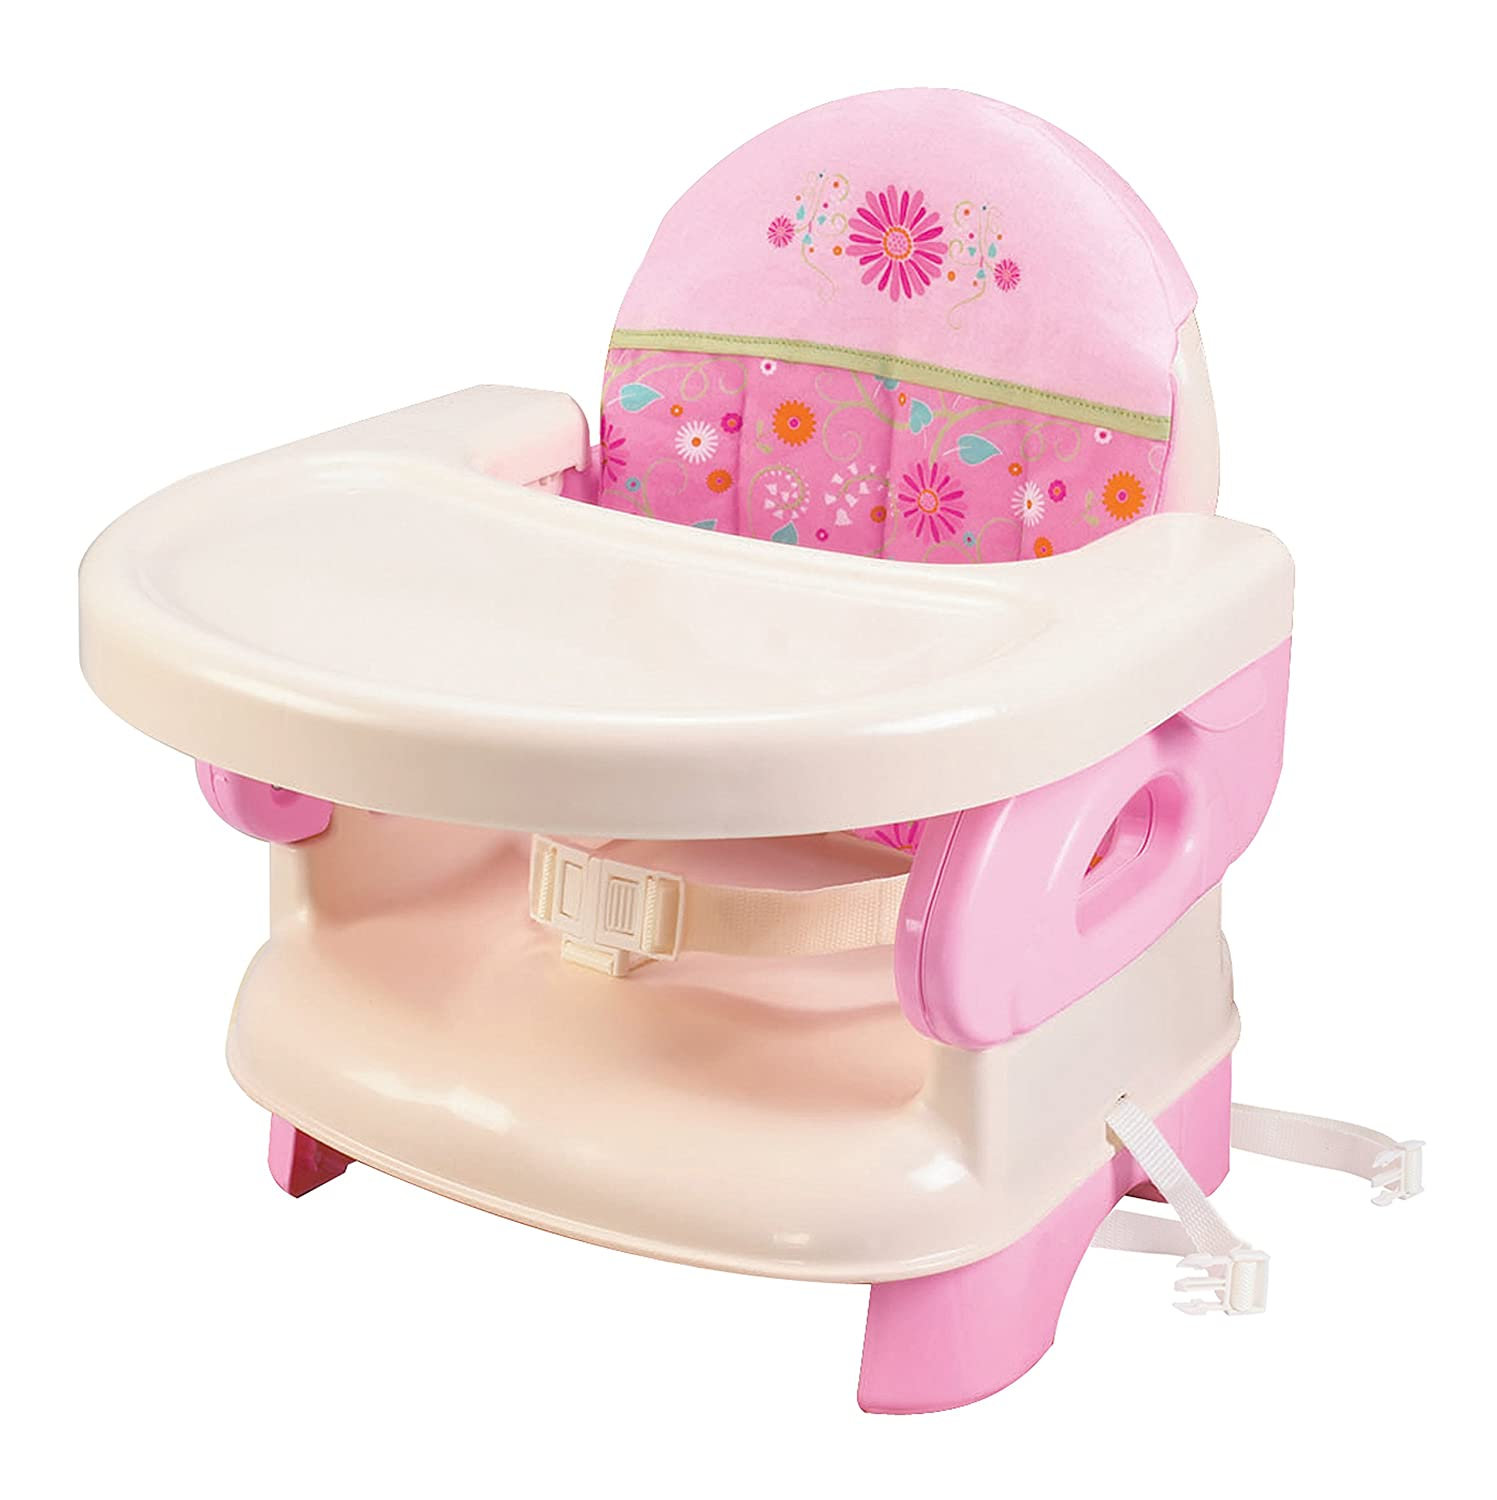 Top 10 Best Baby Booster Seat For Eating (2020 Reviews & Buying Guide) 1